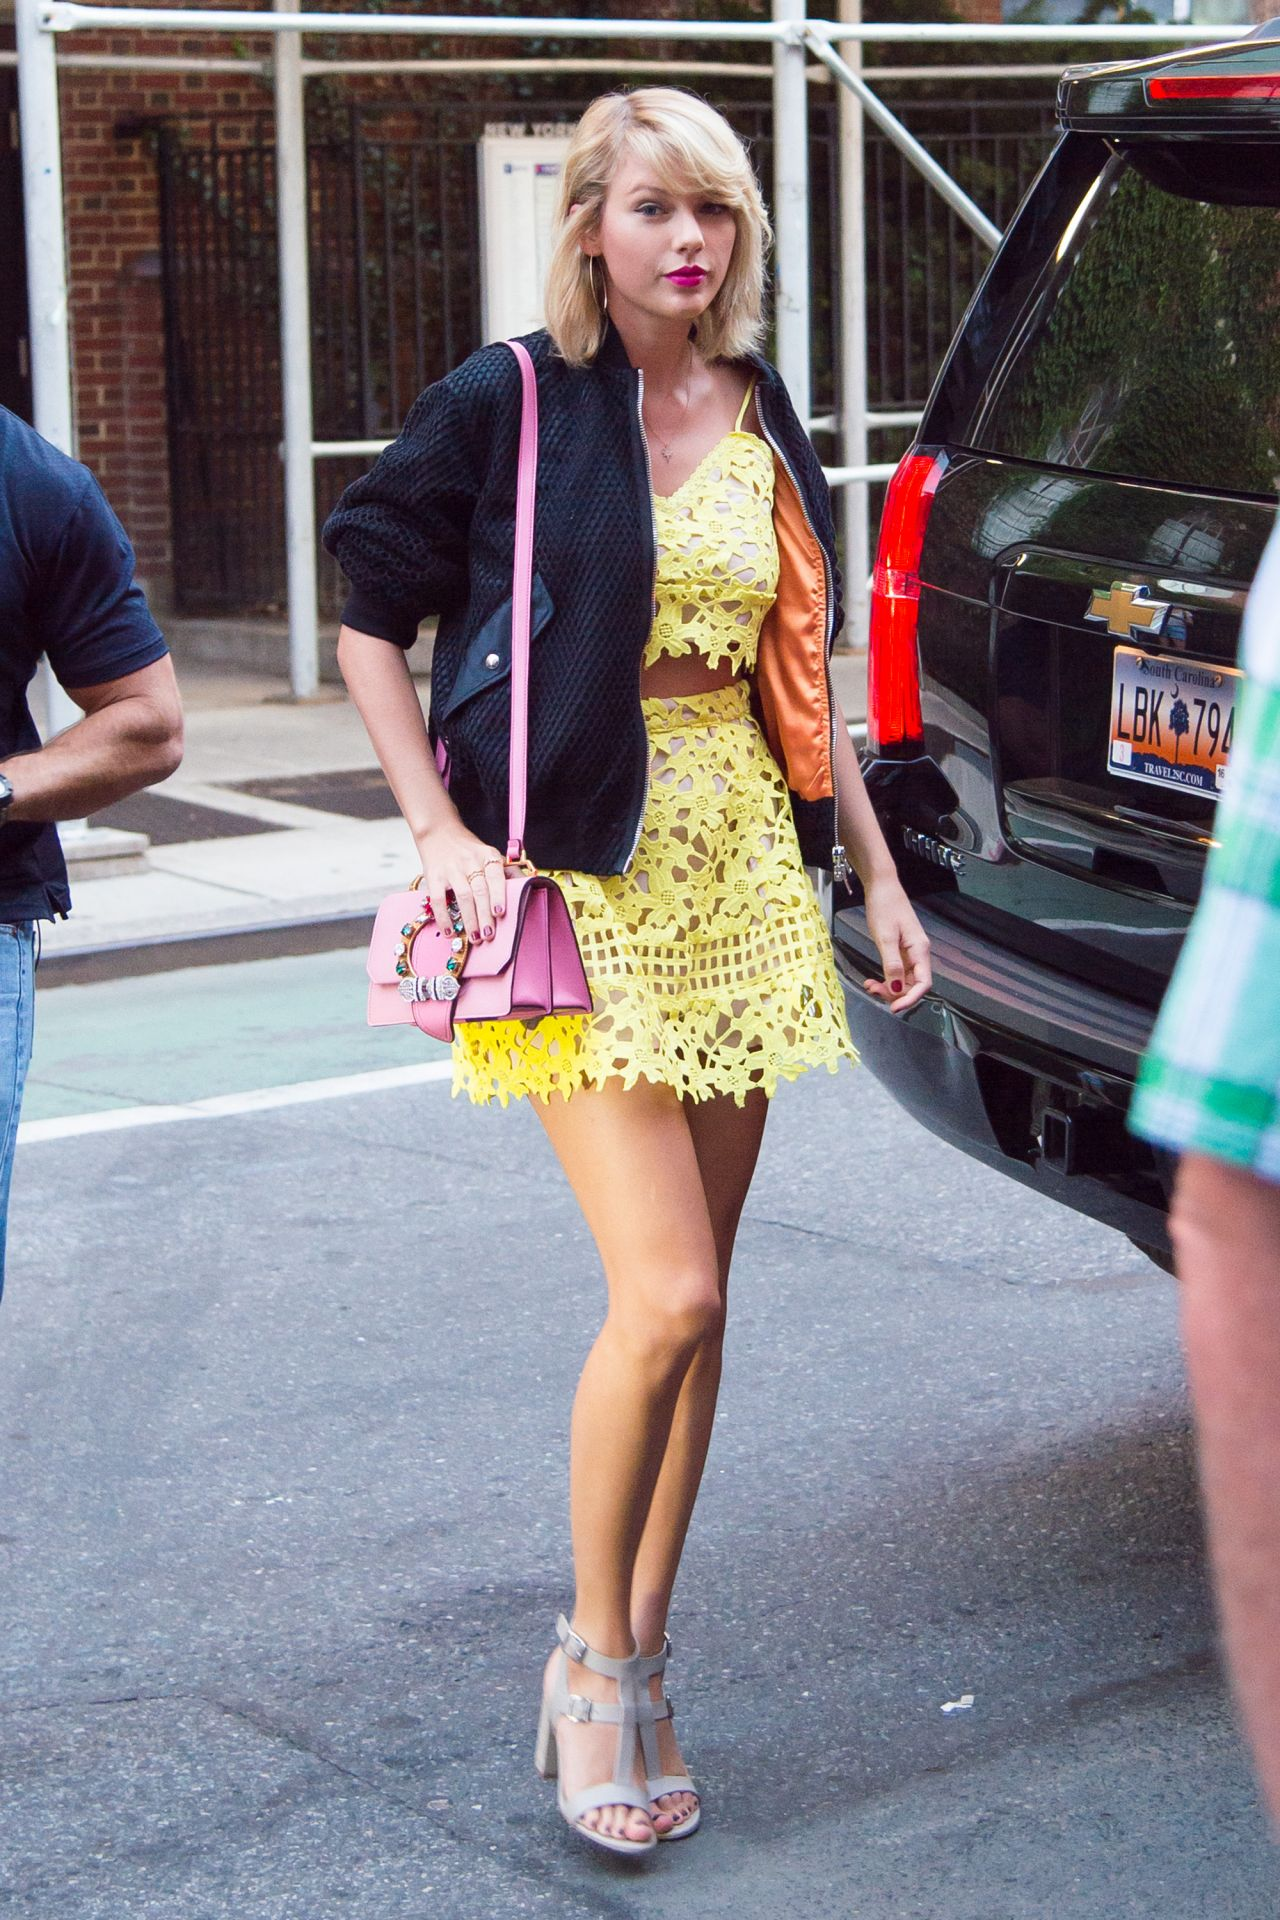 Taylor Swift Cute Outfit Ideas New York City 8 24 2016